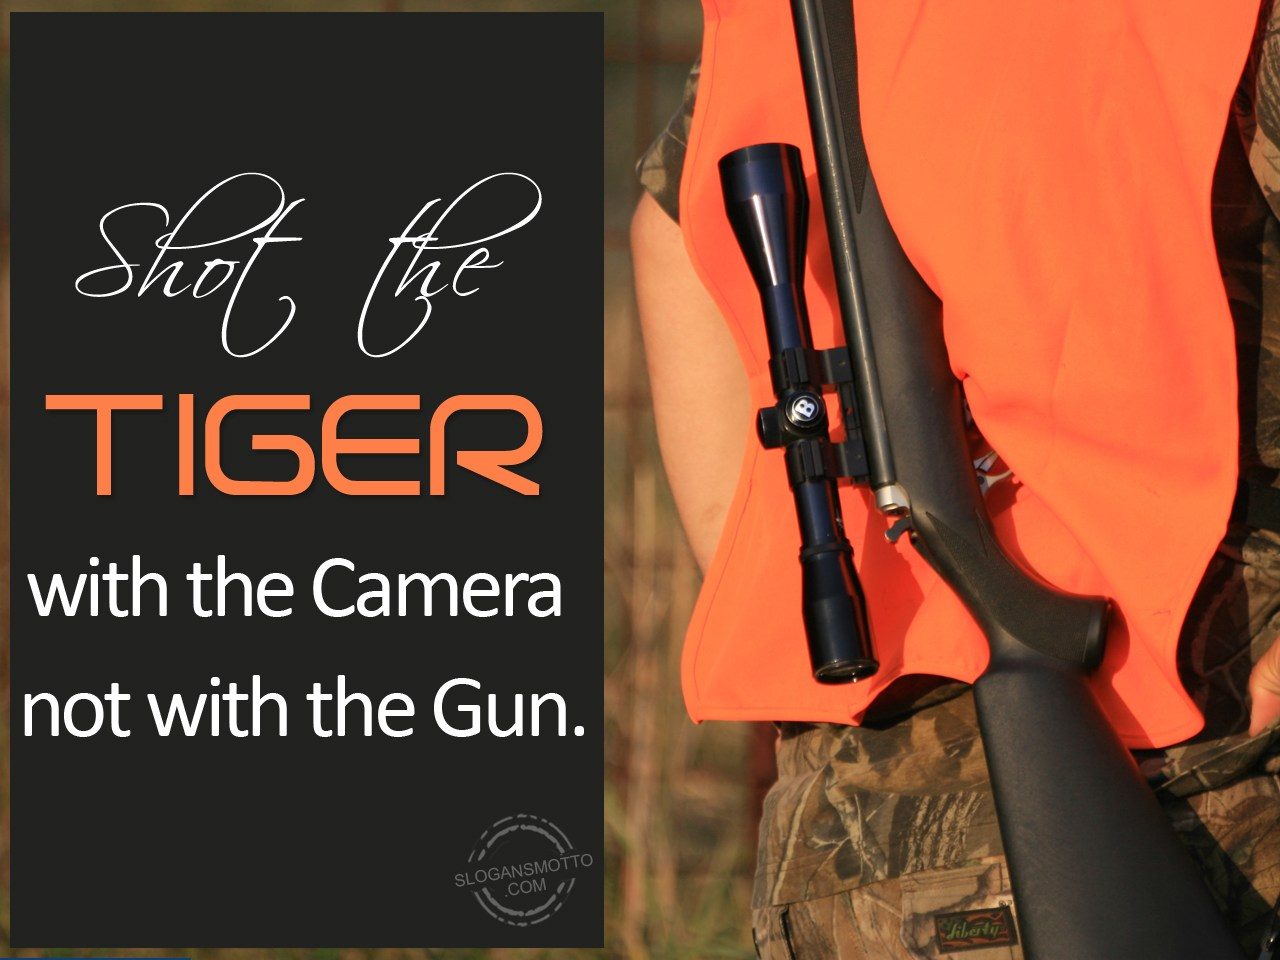 shoot animals with camera not with a gun Free essays on paragraph shoot animals with camera not with gun get help with your writing 1 through 30.